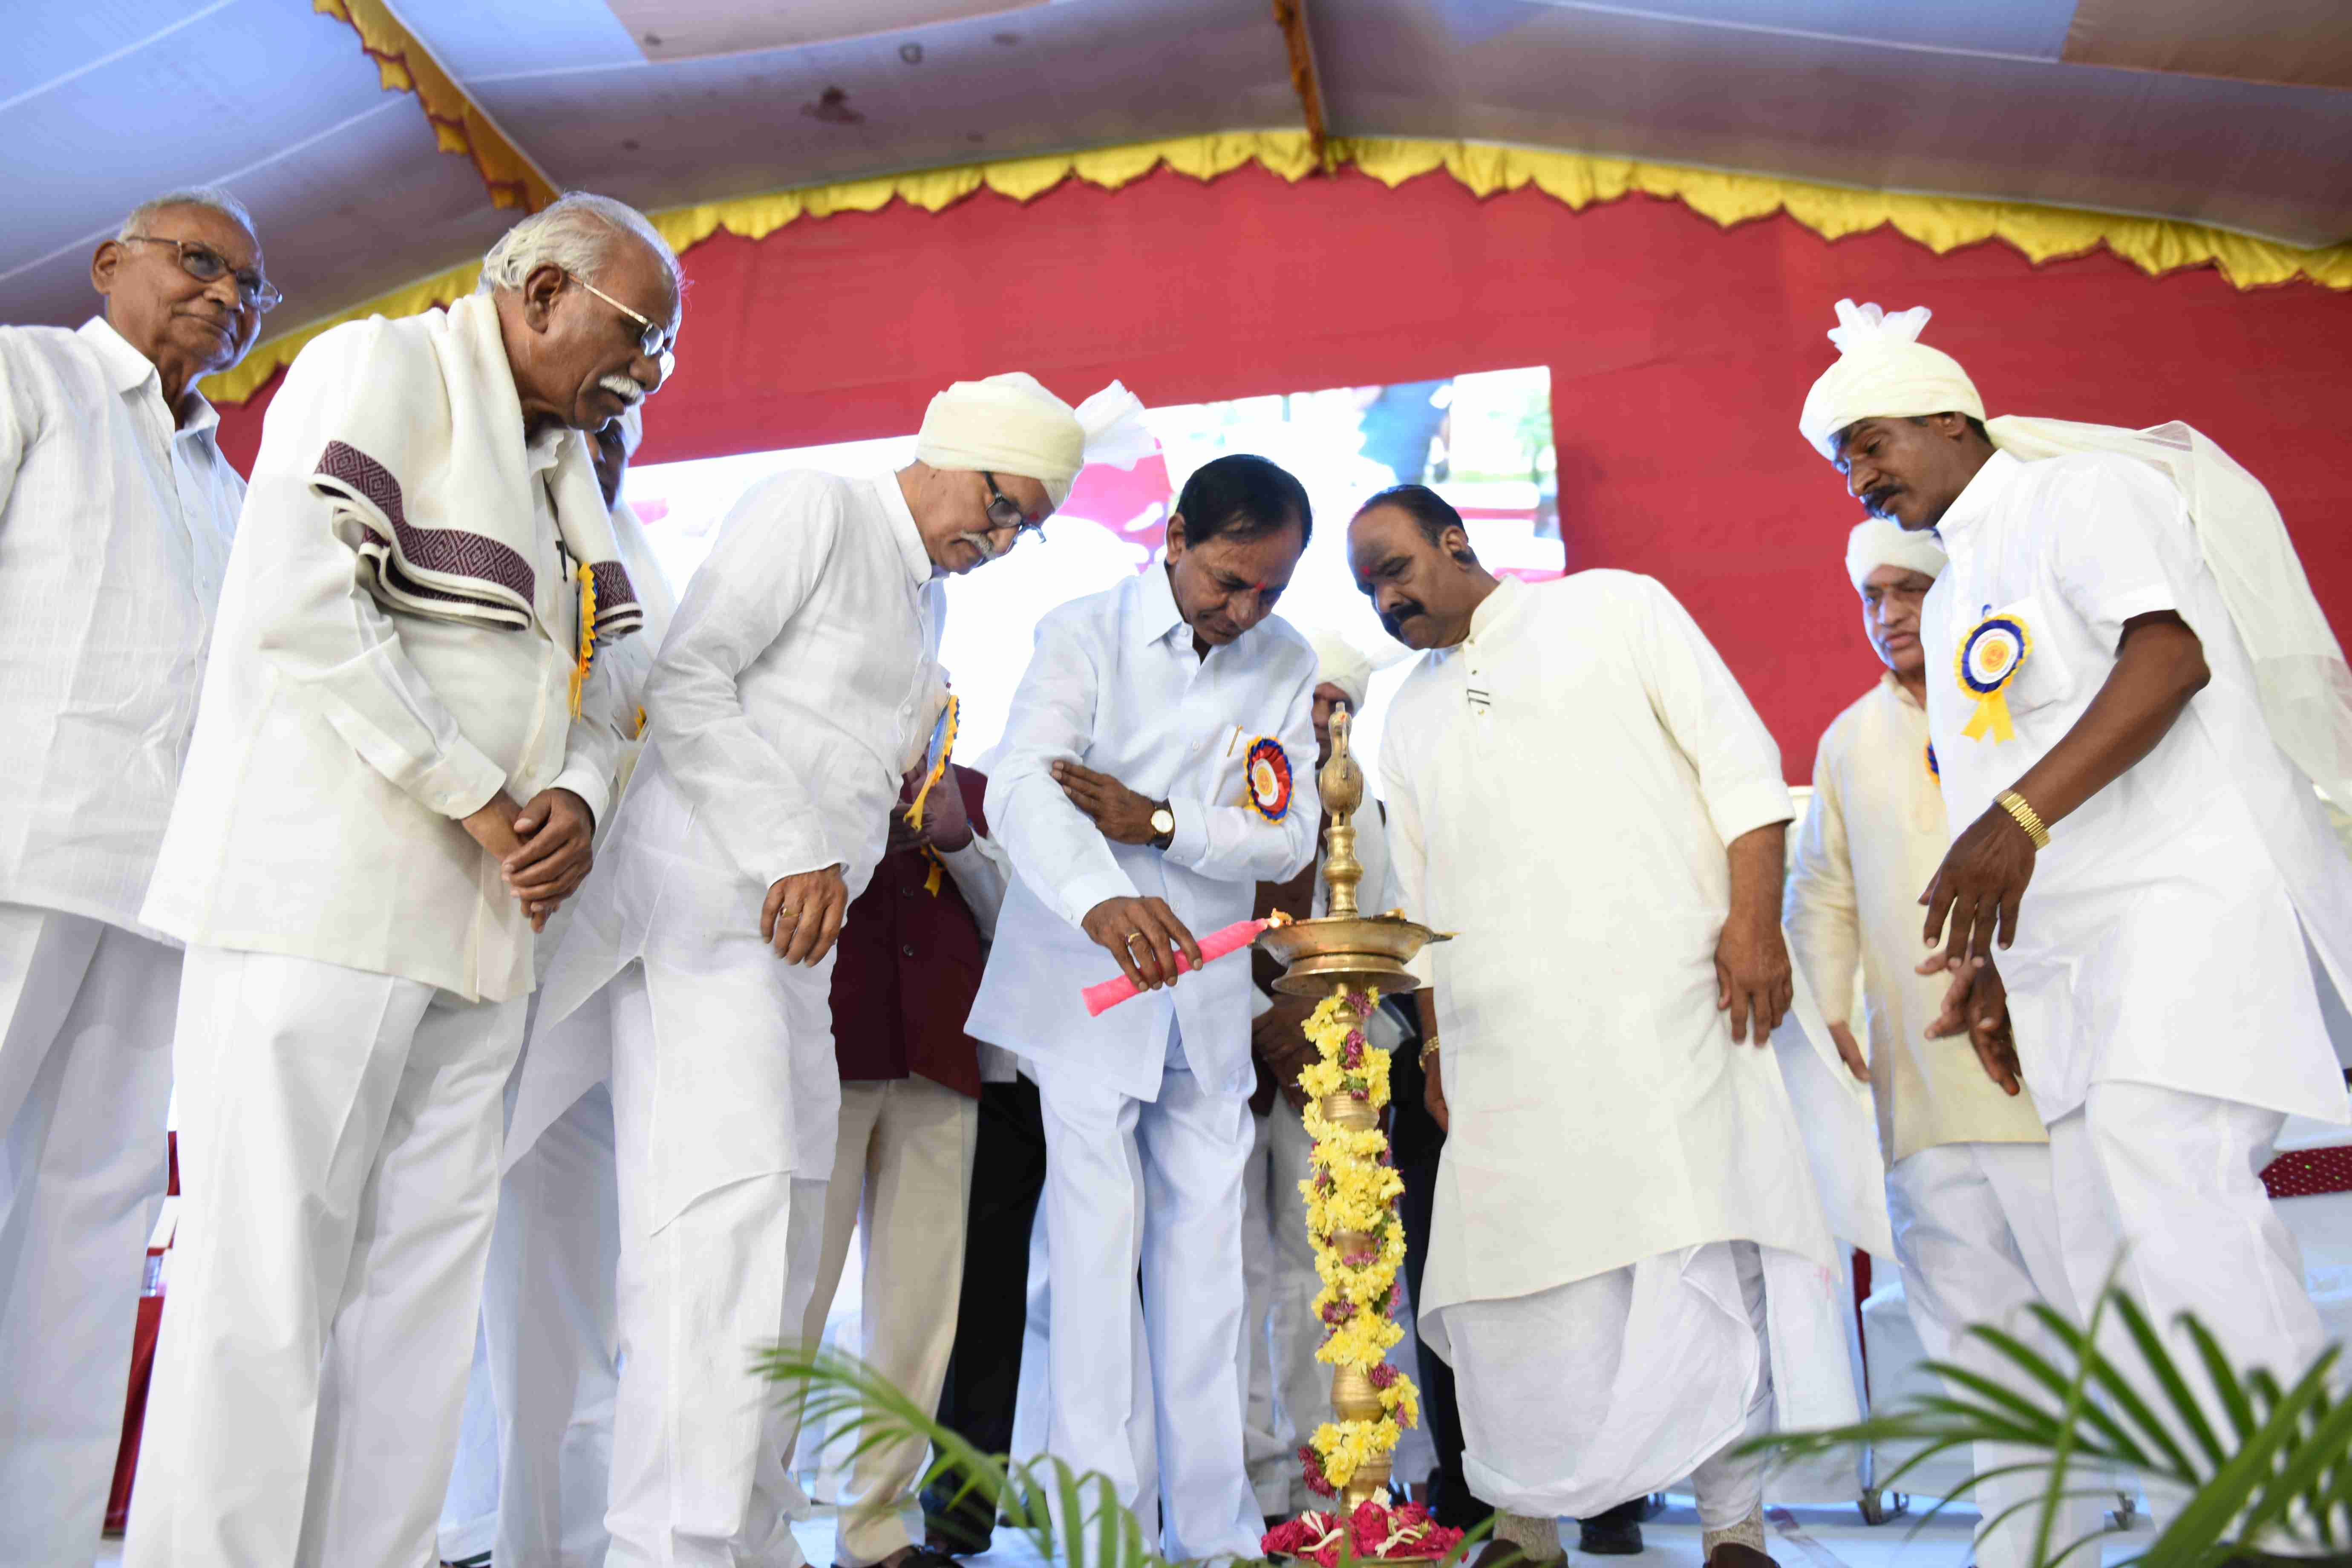 Telangana Chief Minister K.Chandrashekhar Rao participated in Reddy Jana Sangham Diamond Jubilee celebrations at Aliabad, Hyderabad on 18-10-2015.